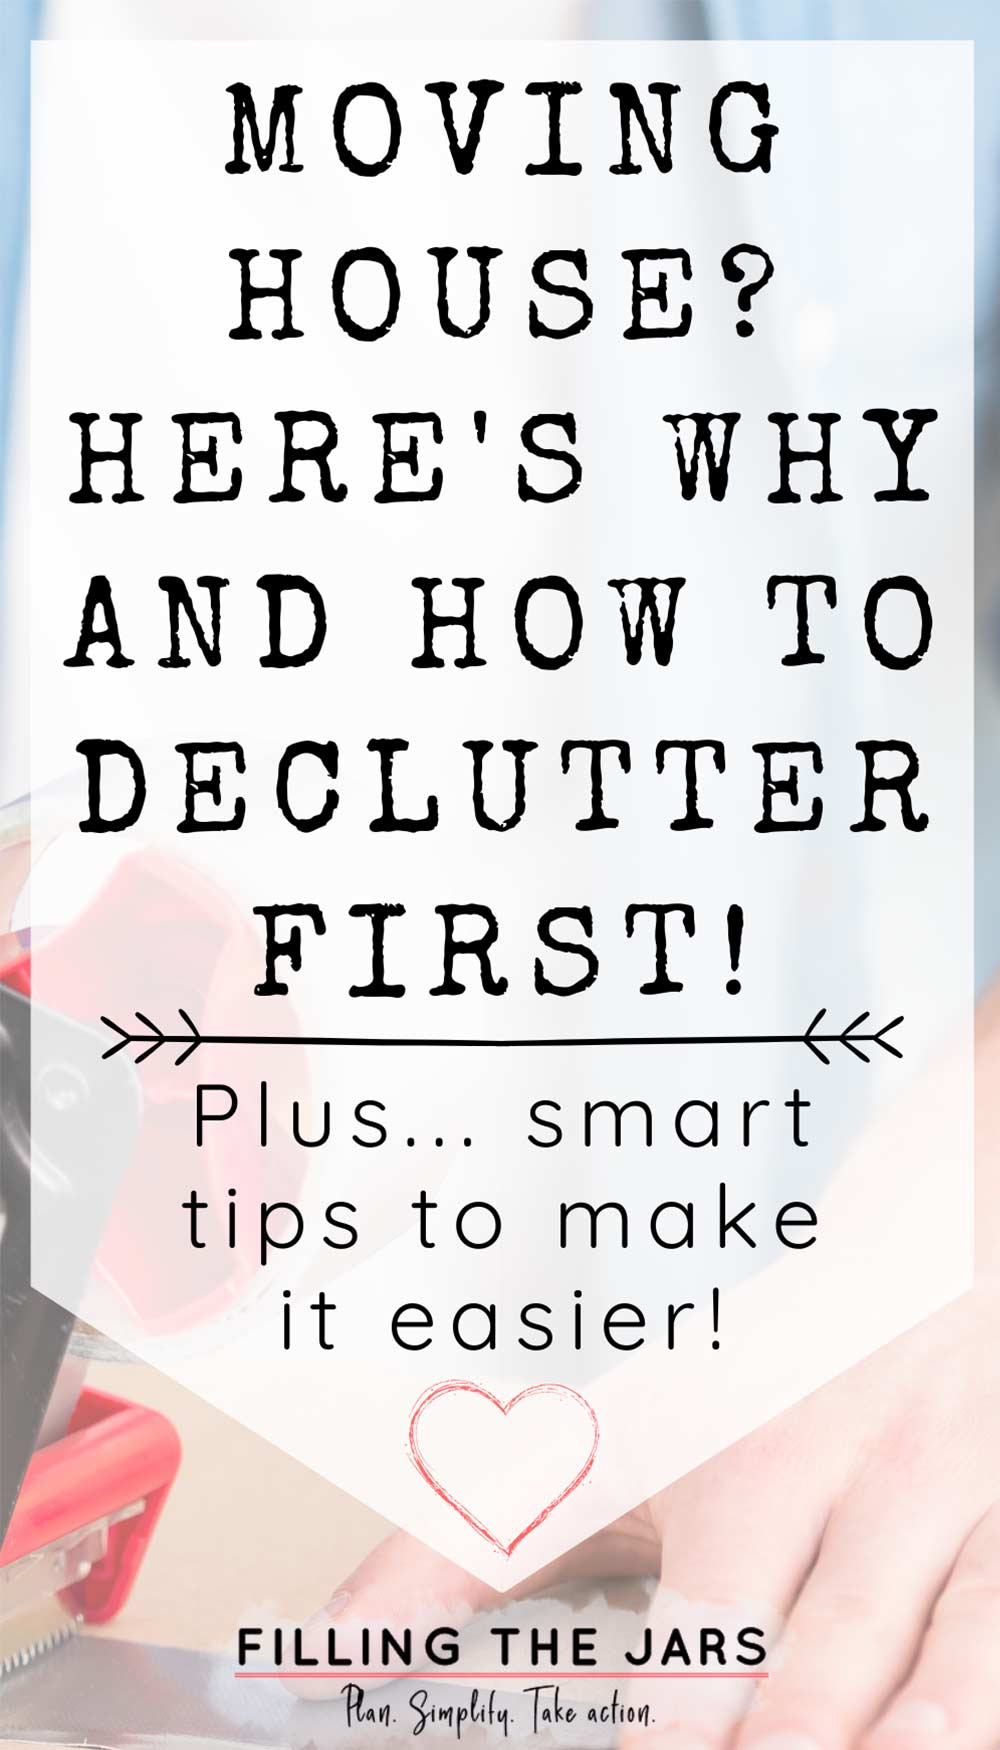 Text why and how to declutter when moving on white background over image of adult hands sealing a box with packing tape.